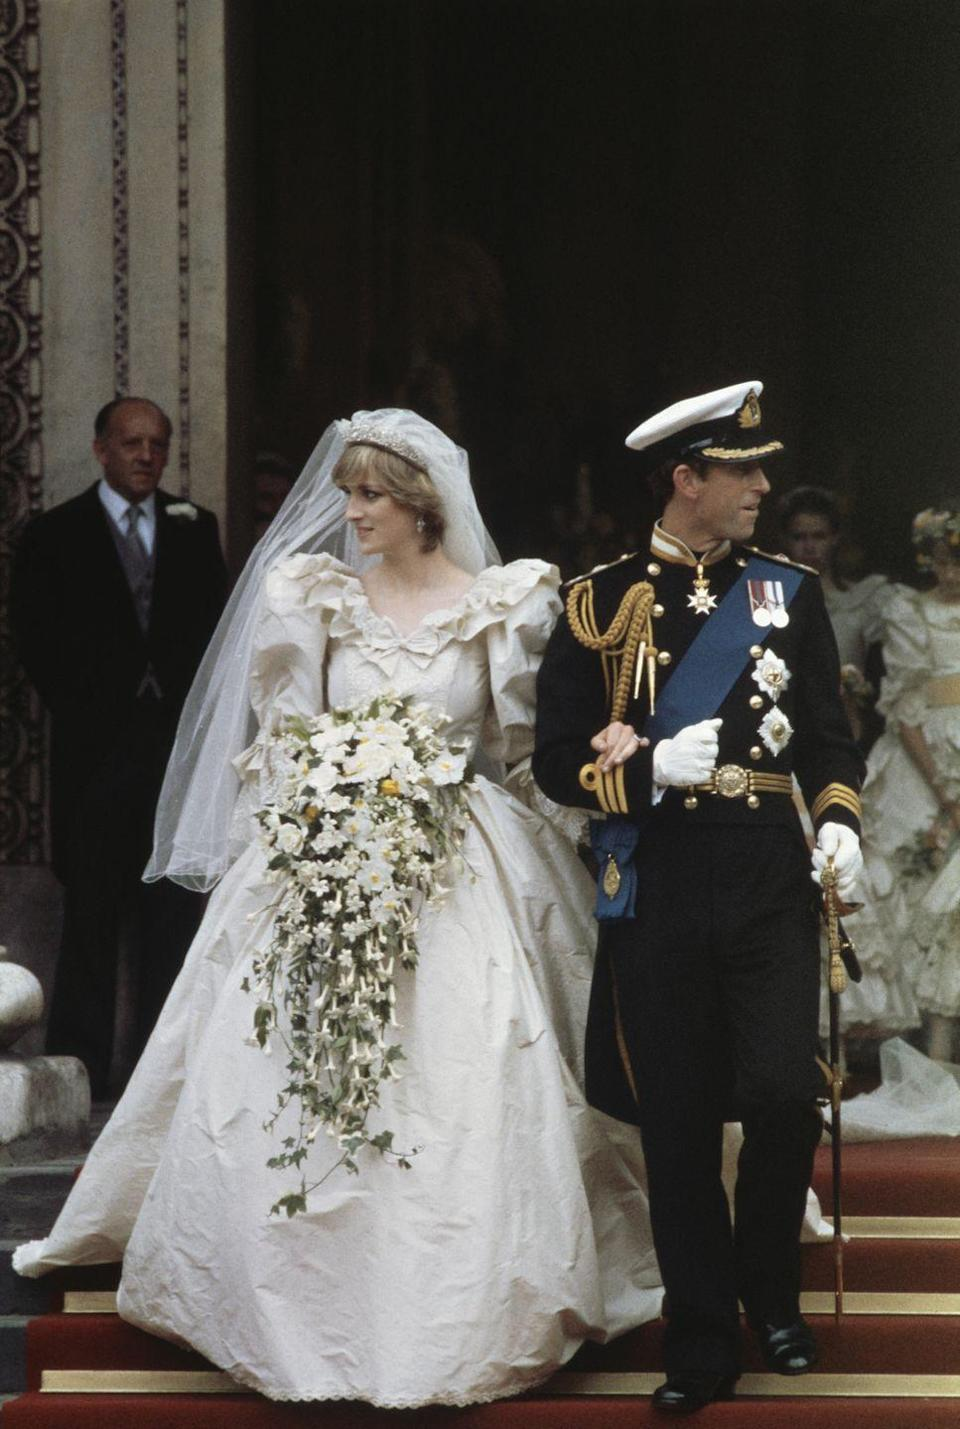 <p>The 1981 wedding of Lady Diana Spencer and Prince Charles was an absolute game changer in the wedding world. An estimated 750 million people watched the ceremony on television—and soon brides everywhere were demanding a fairytale wedding. </p>